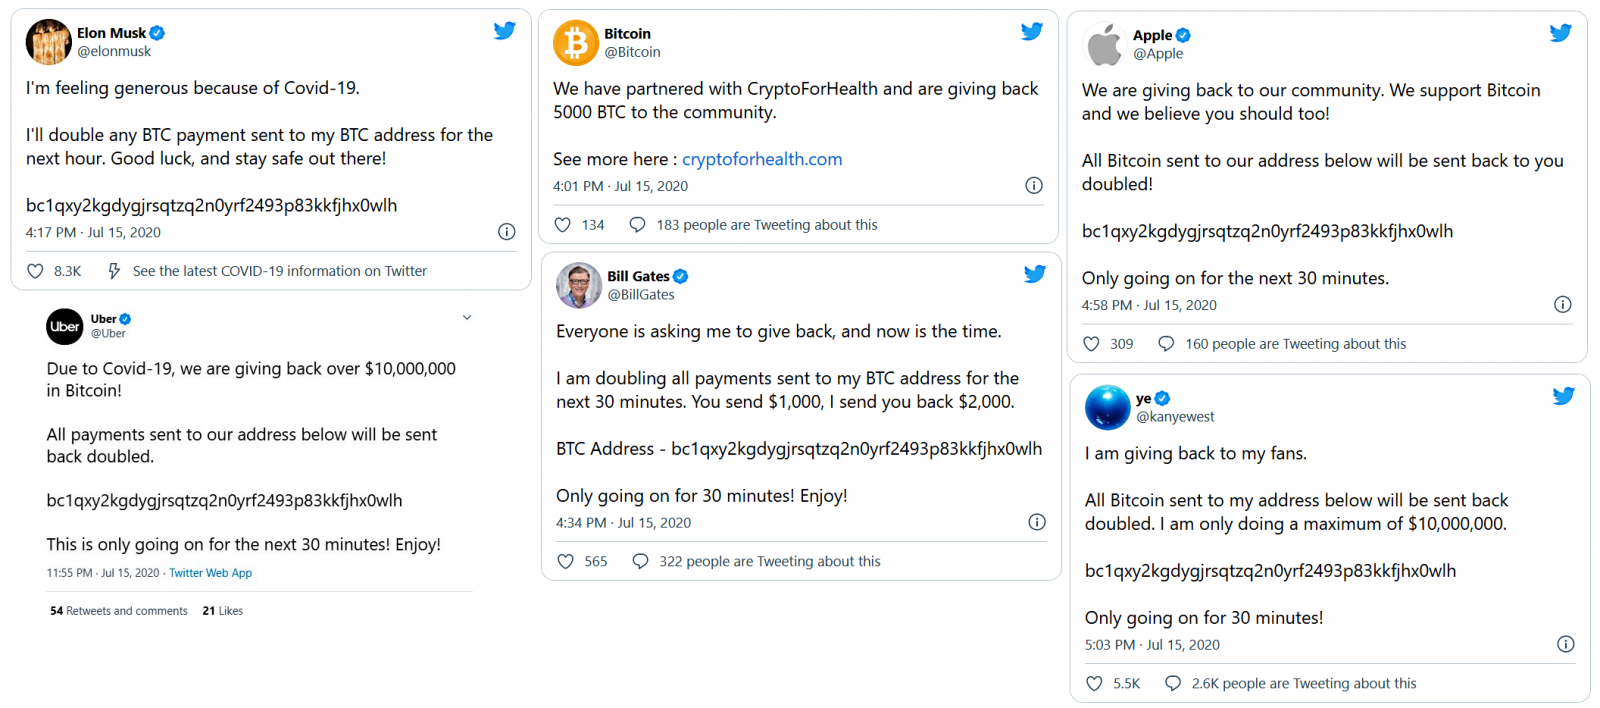 Four suspects accused of twitter hack roles, bitcoin scam